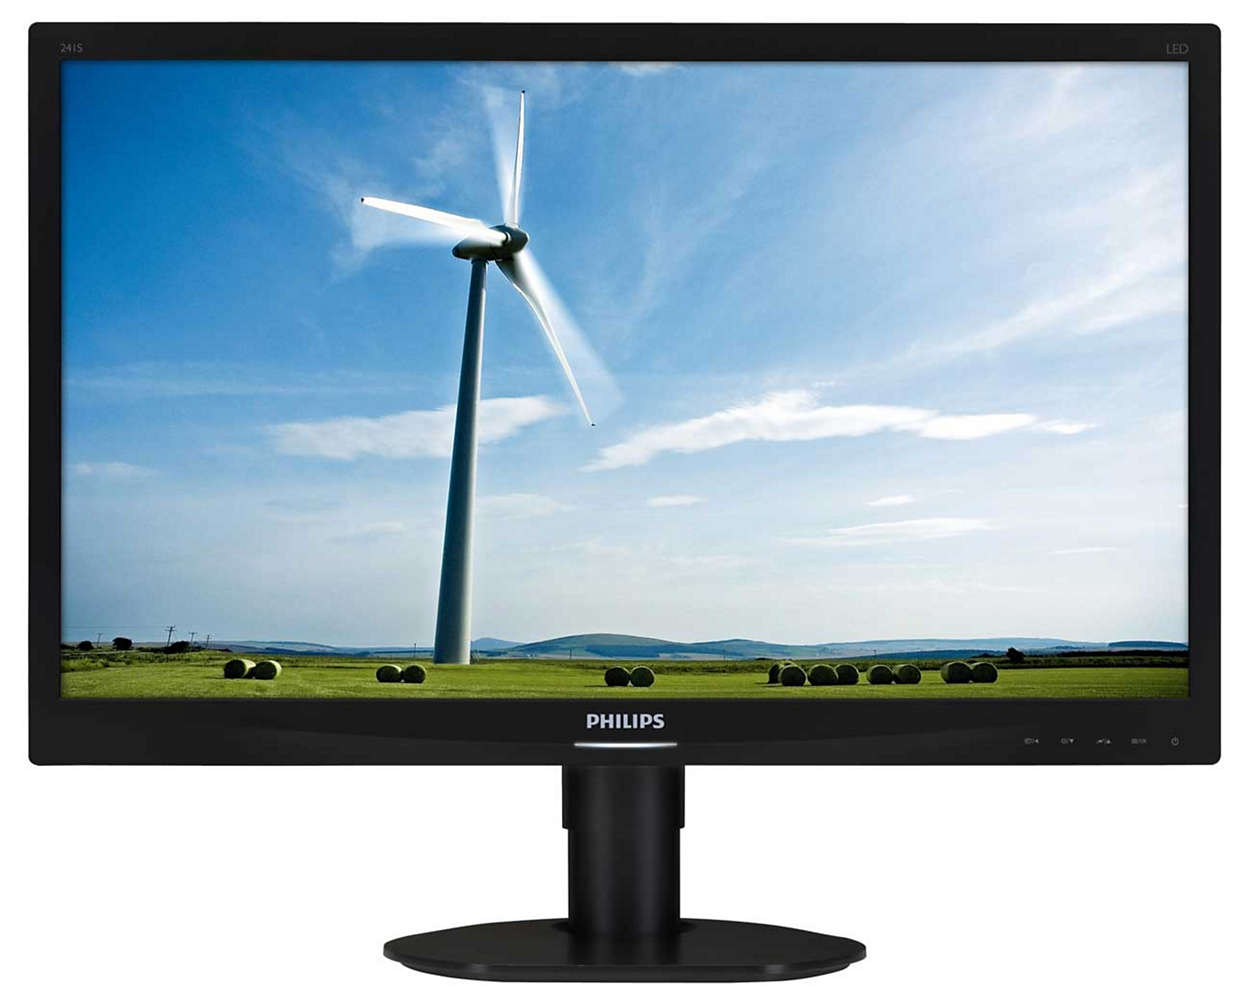 Monitor LED czy LCD